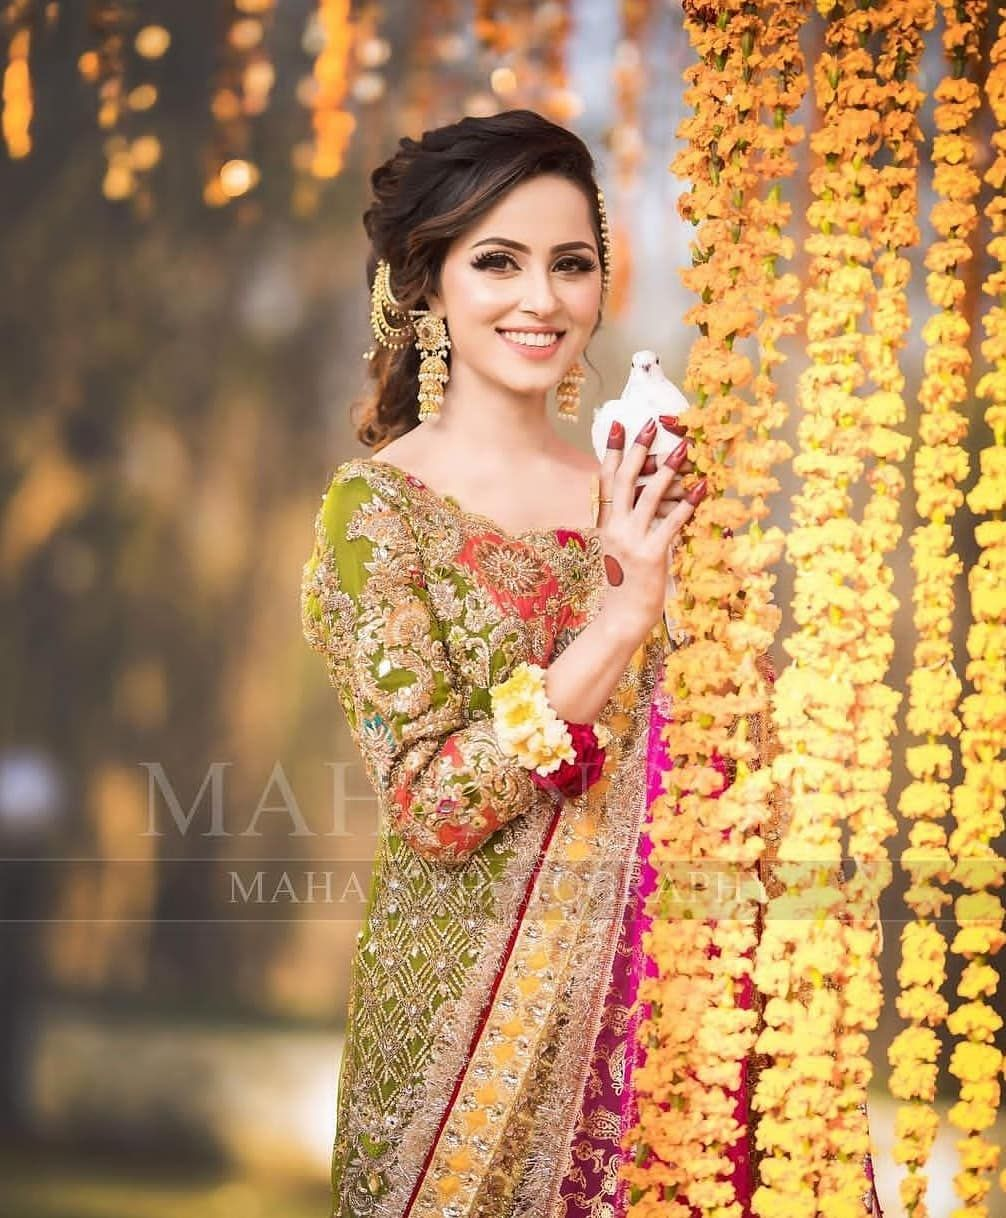 Pakistani Bride In 2020 Pakistani Bridal Makeup Beautiful Indian Brides Bridal Dresses Pakistan